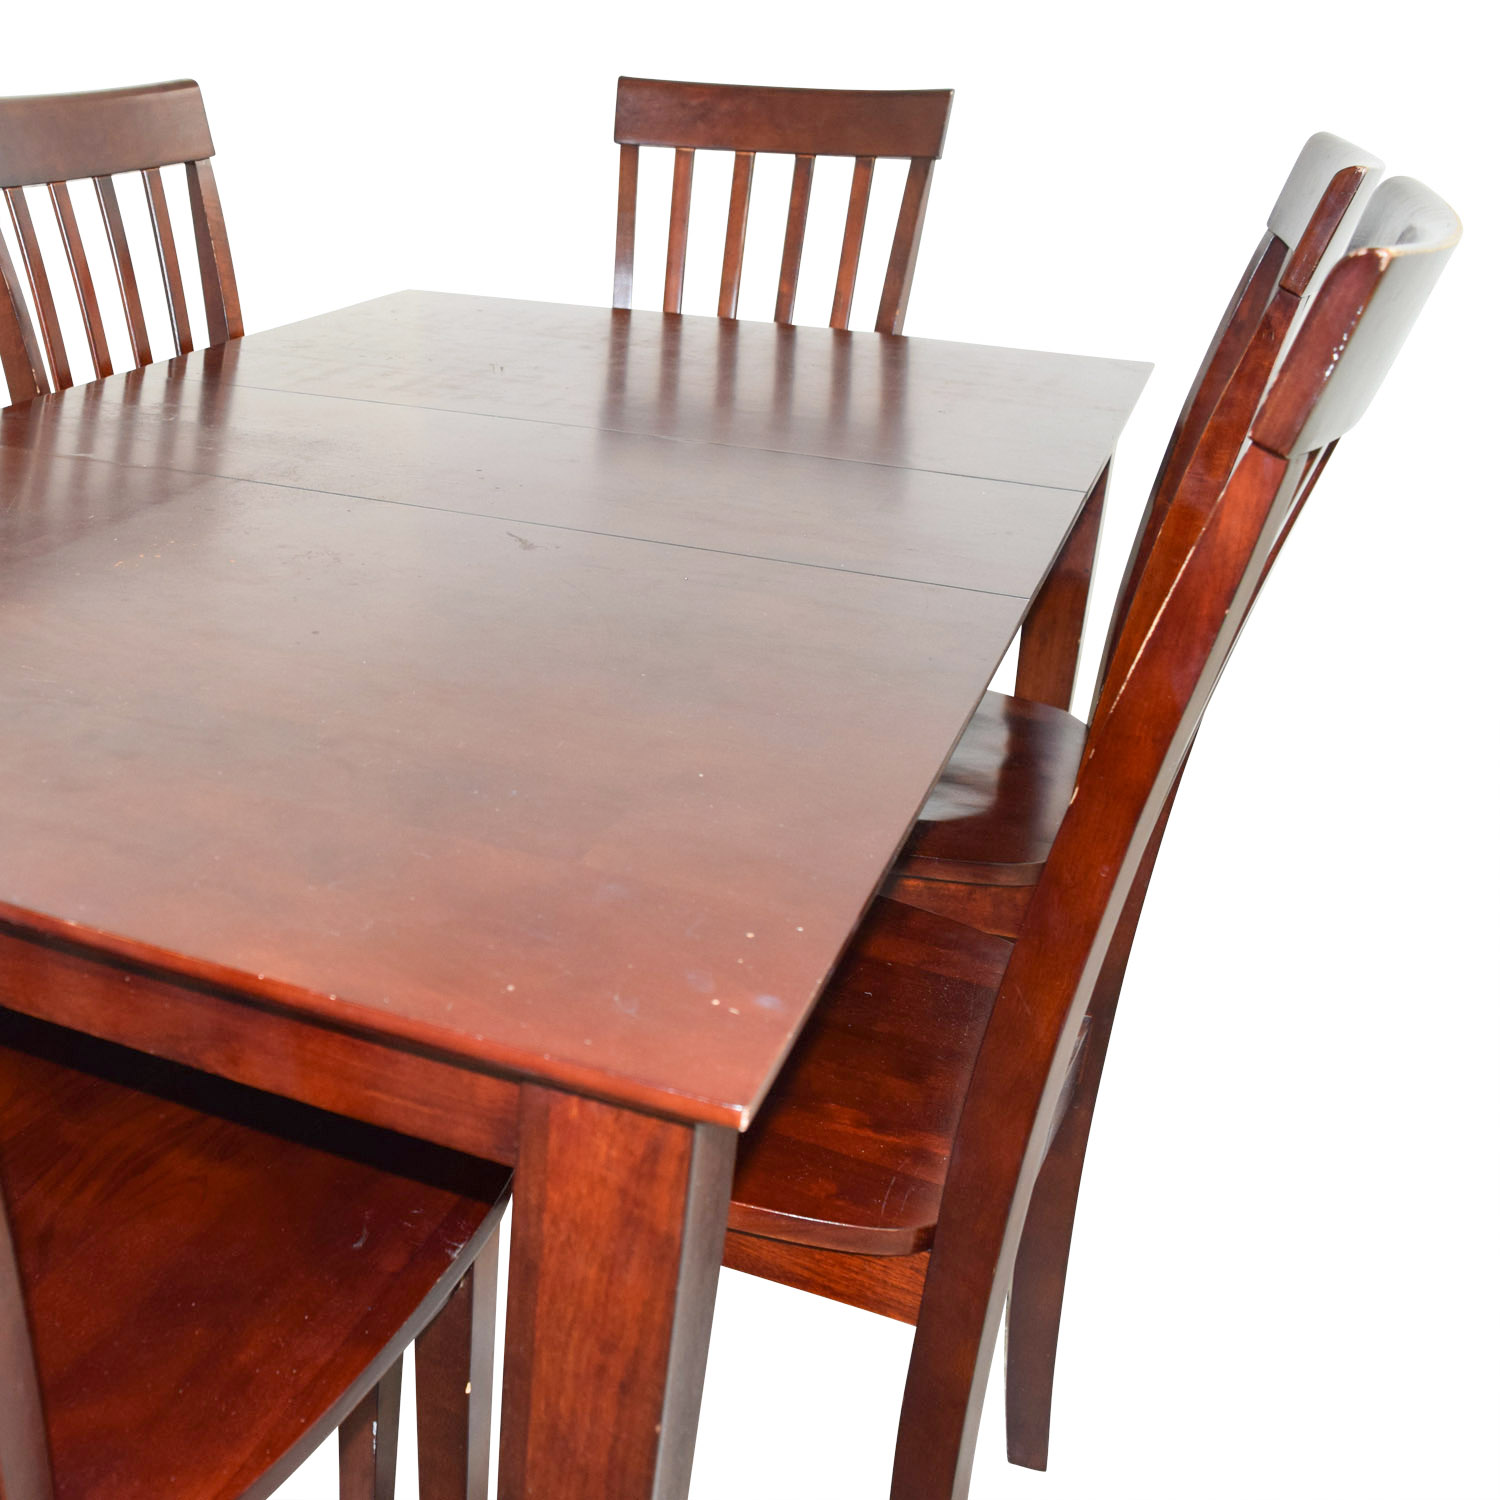 Dining Room Discount Furniture: Bob's Discount Furniture Bob's Furniture Dining